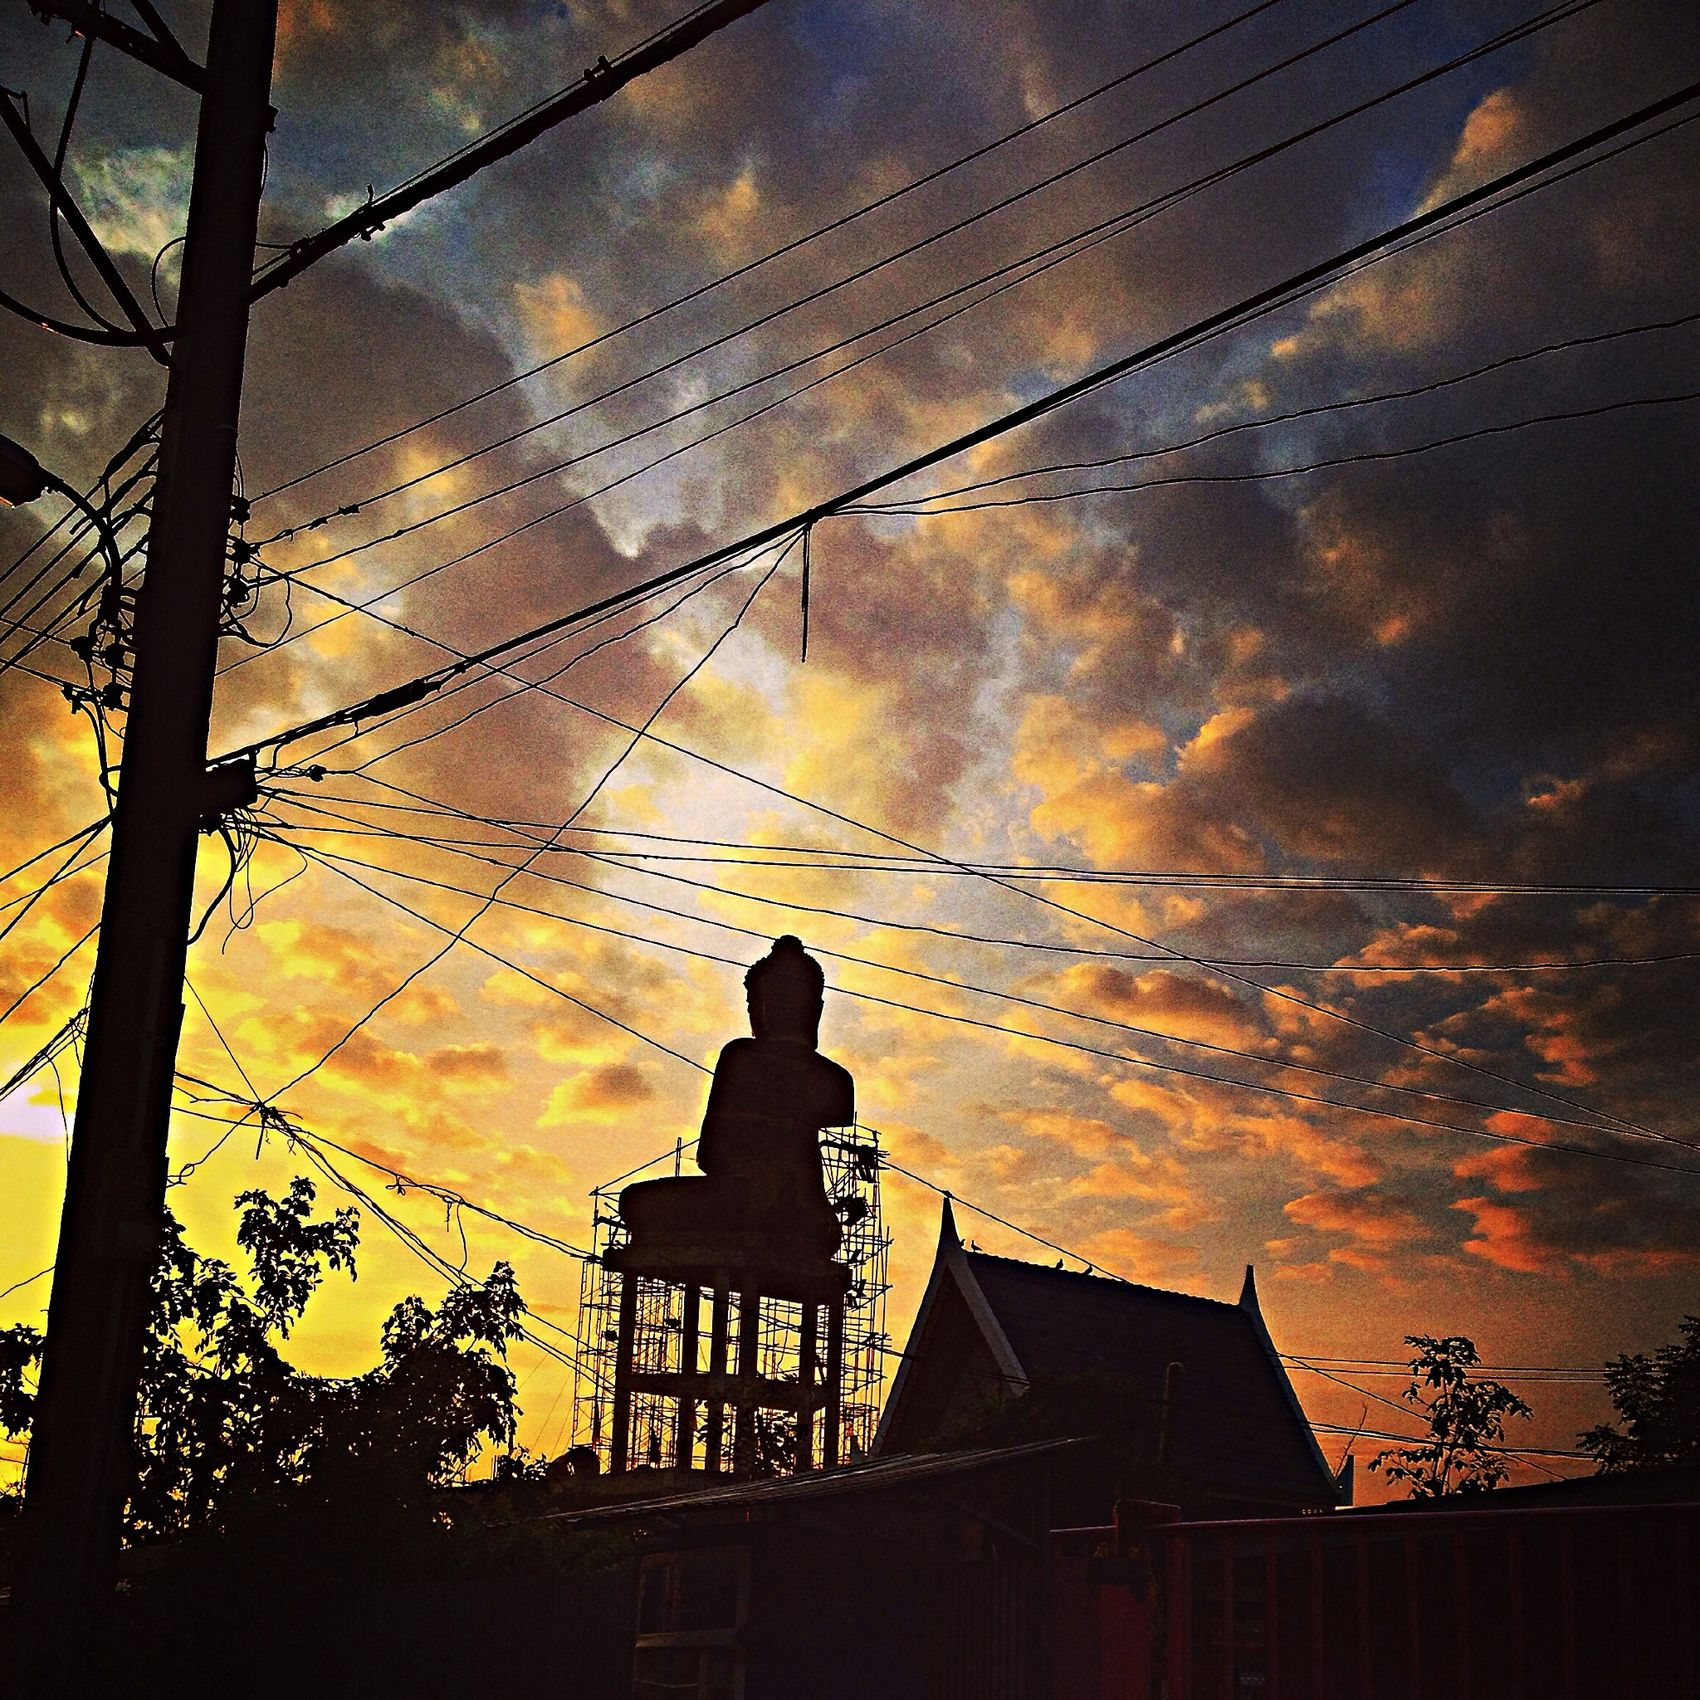 Clouds And Sky Sunset Silhouettes Image Of Bhuddha Temple